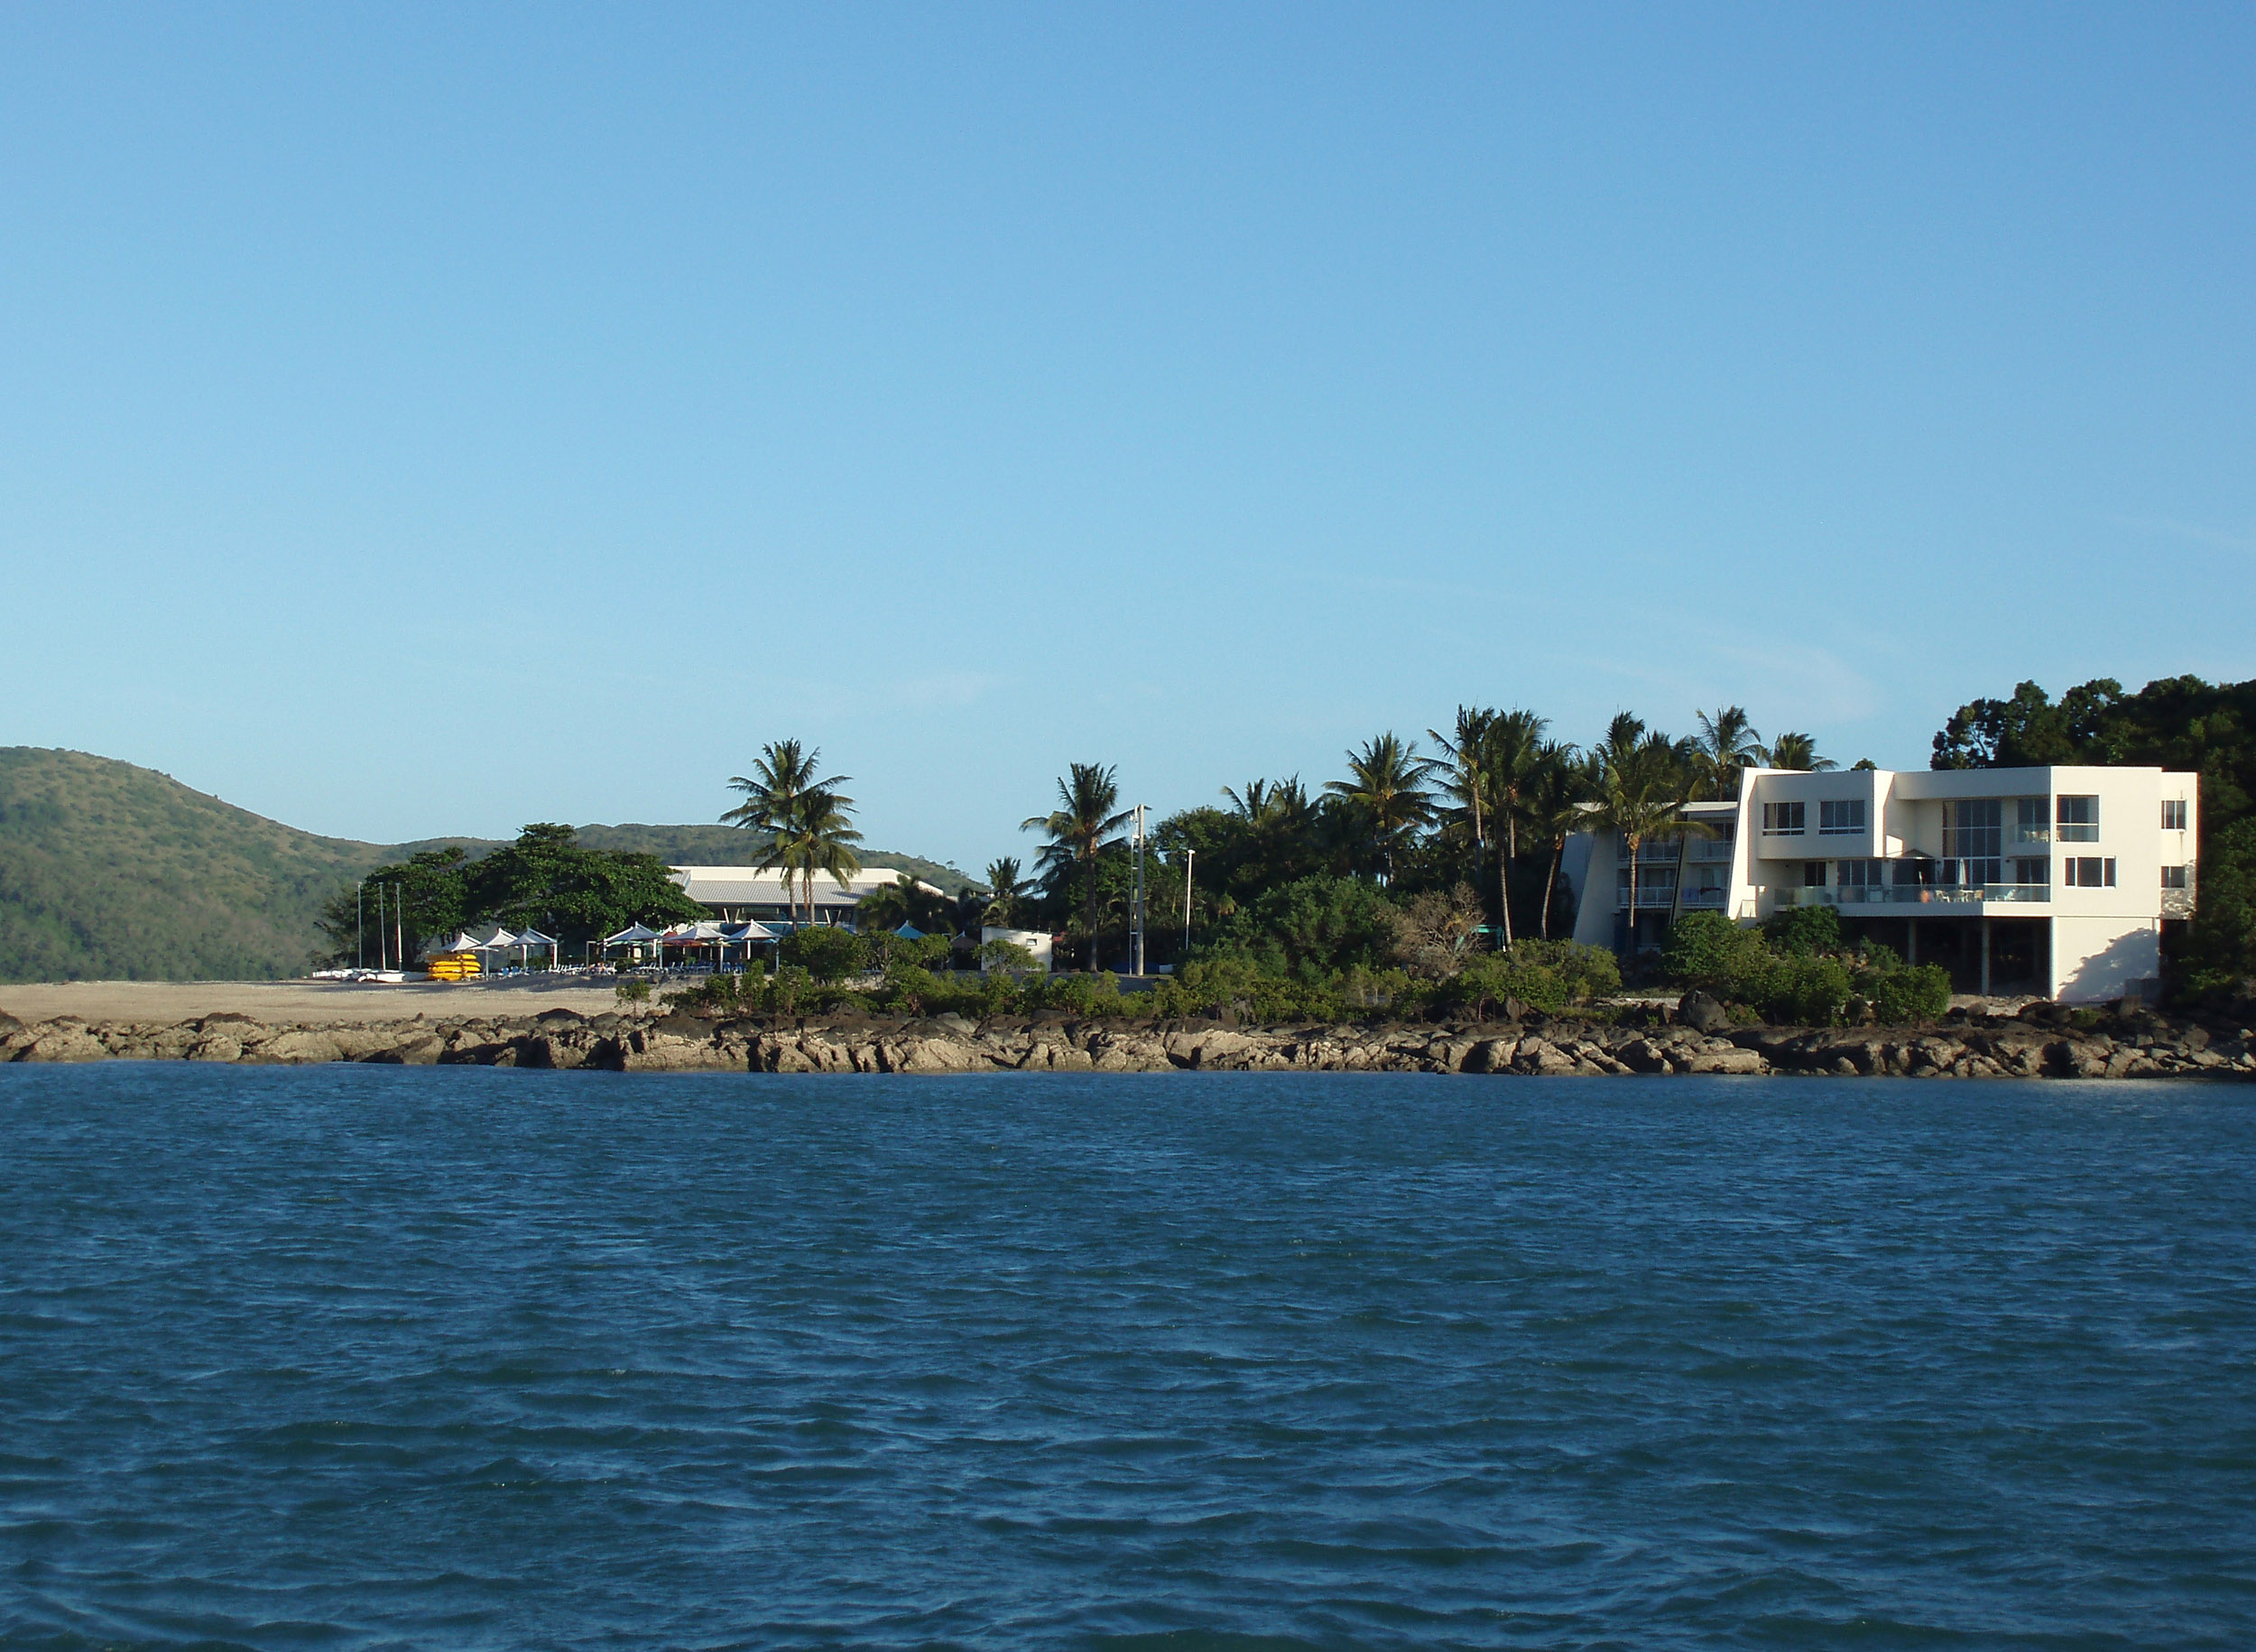 Watersports Business For Sale Magnetic Island